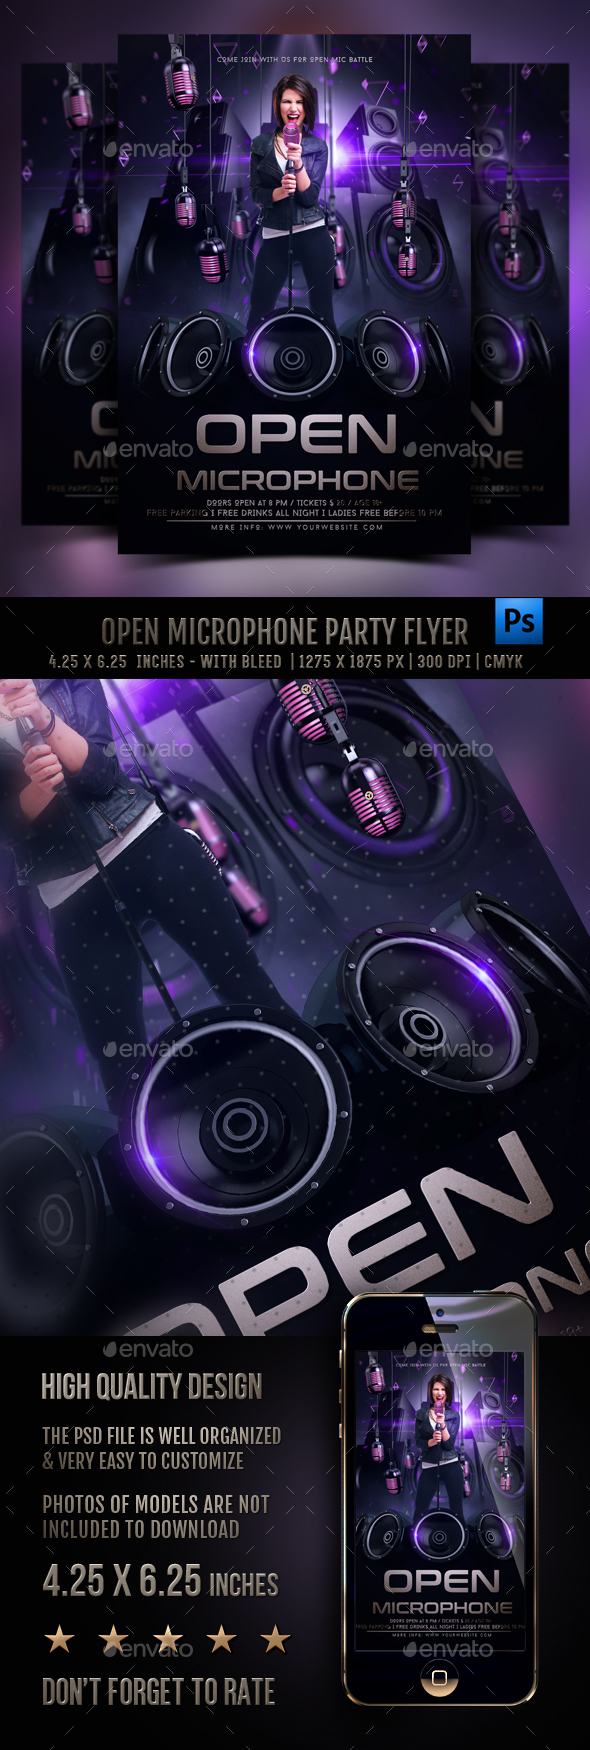 Open Microphone Flyer Template - Clubs & Parties Events